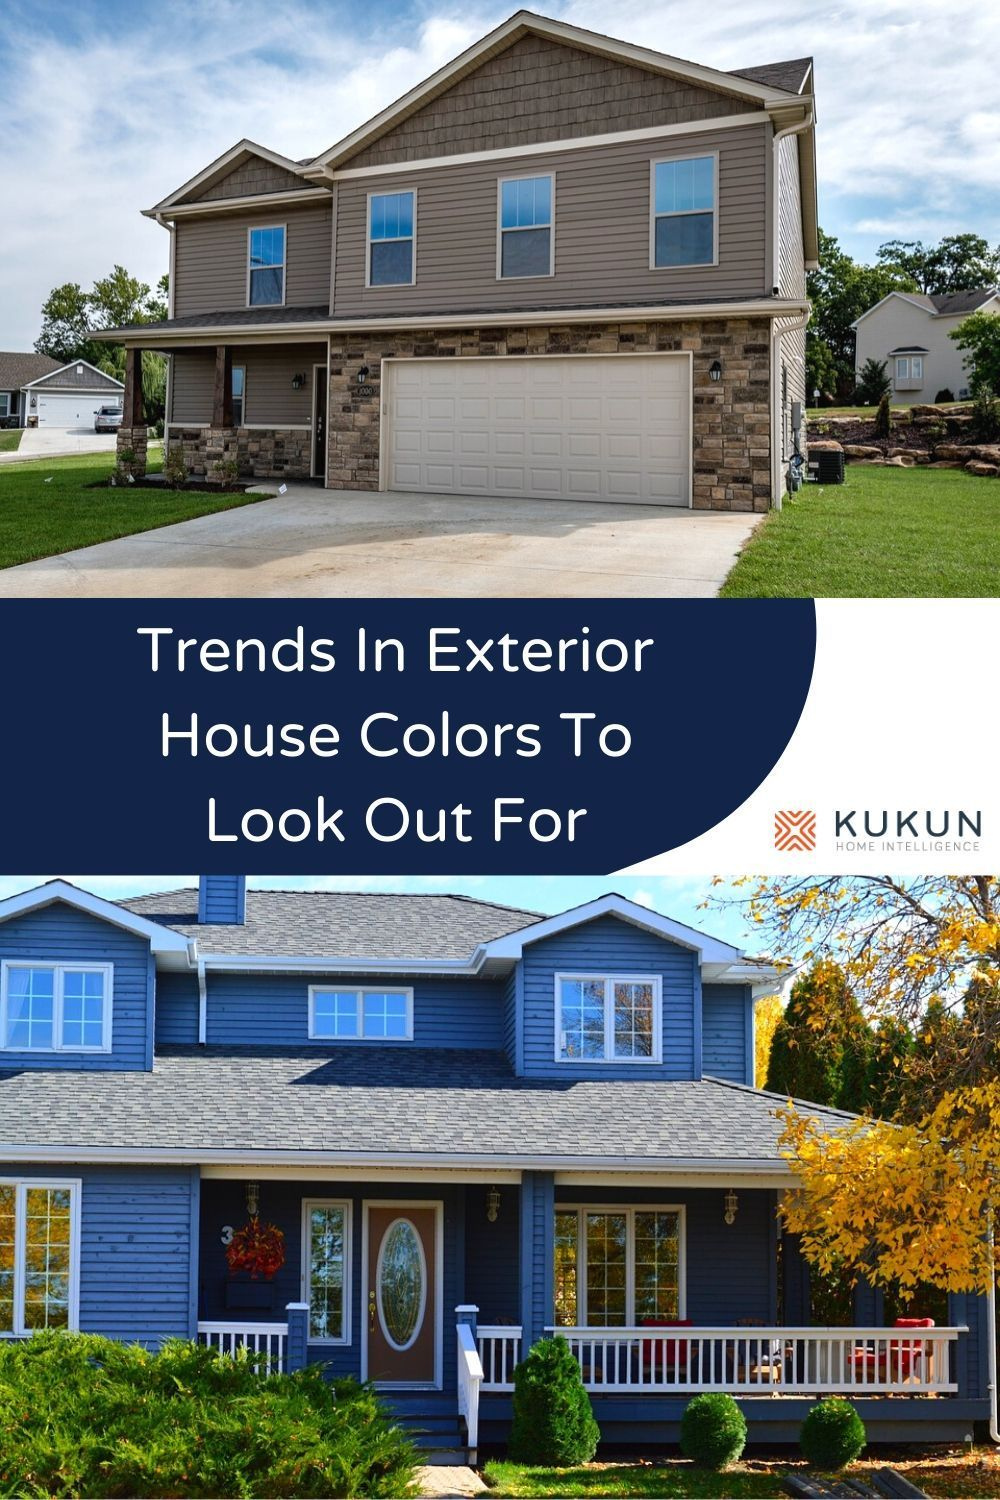 12 Exterior House Colors That Will Be Huge In 2020 In 2020 Exterior House Colors House Exterior Blue House Exterior